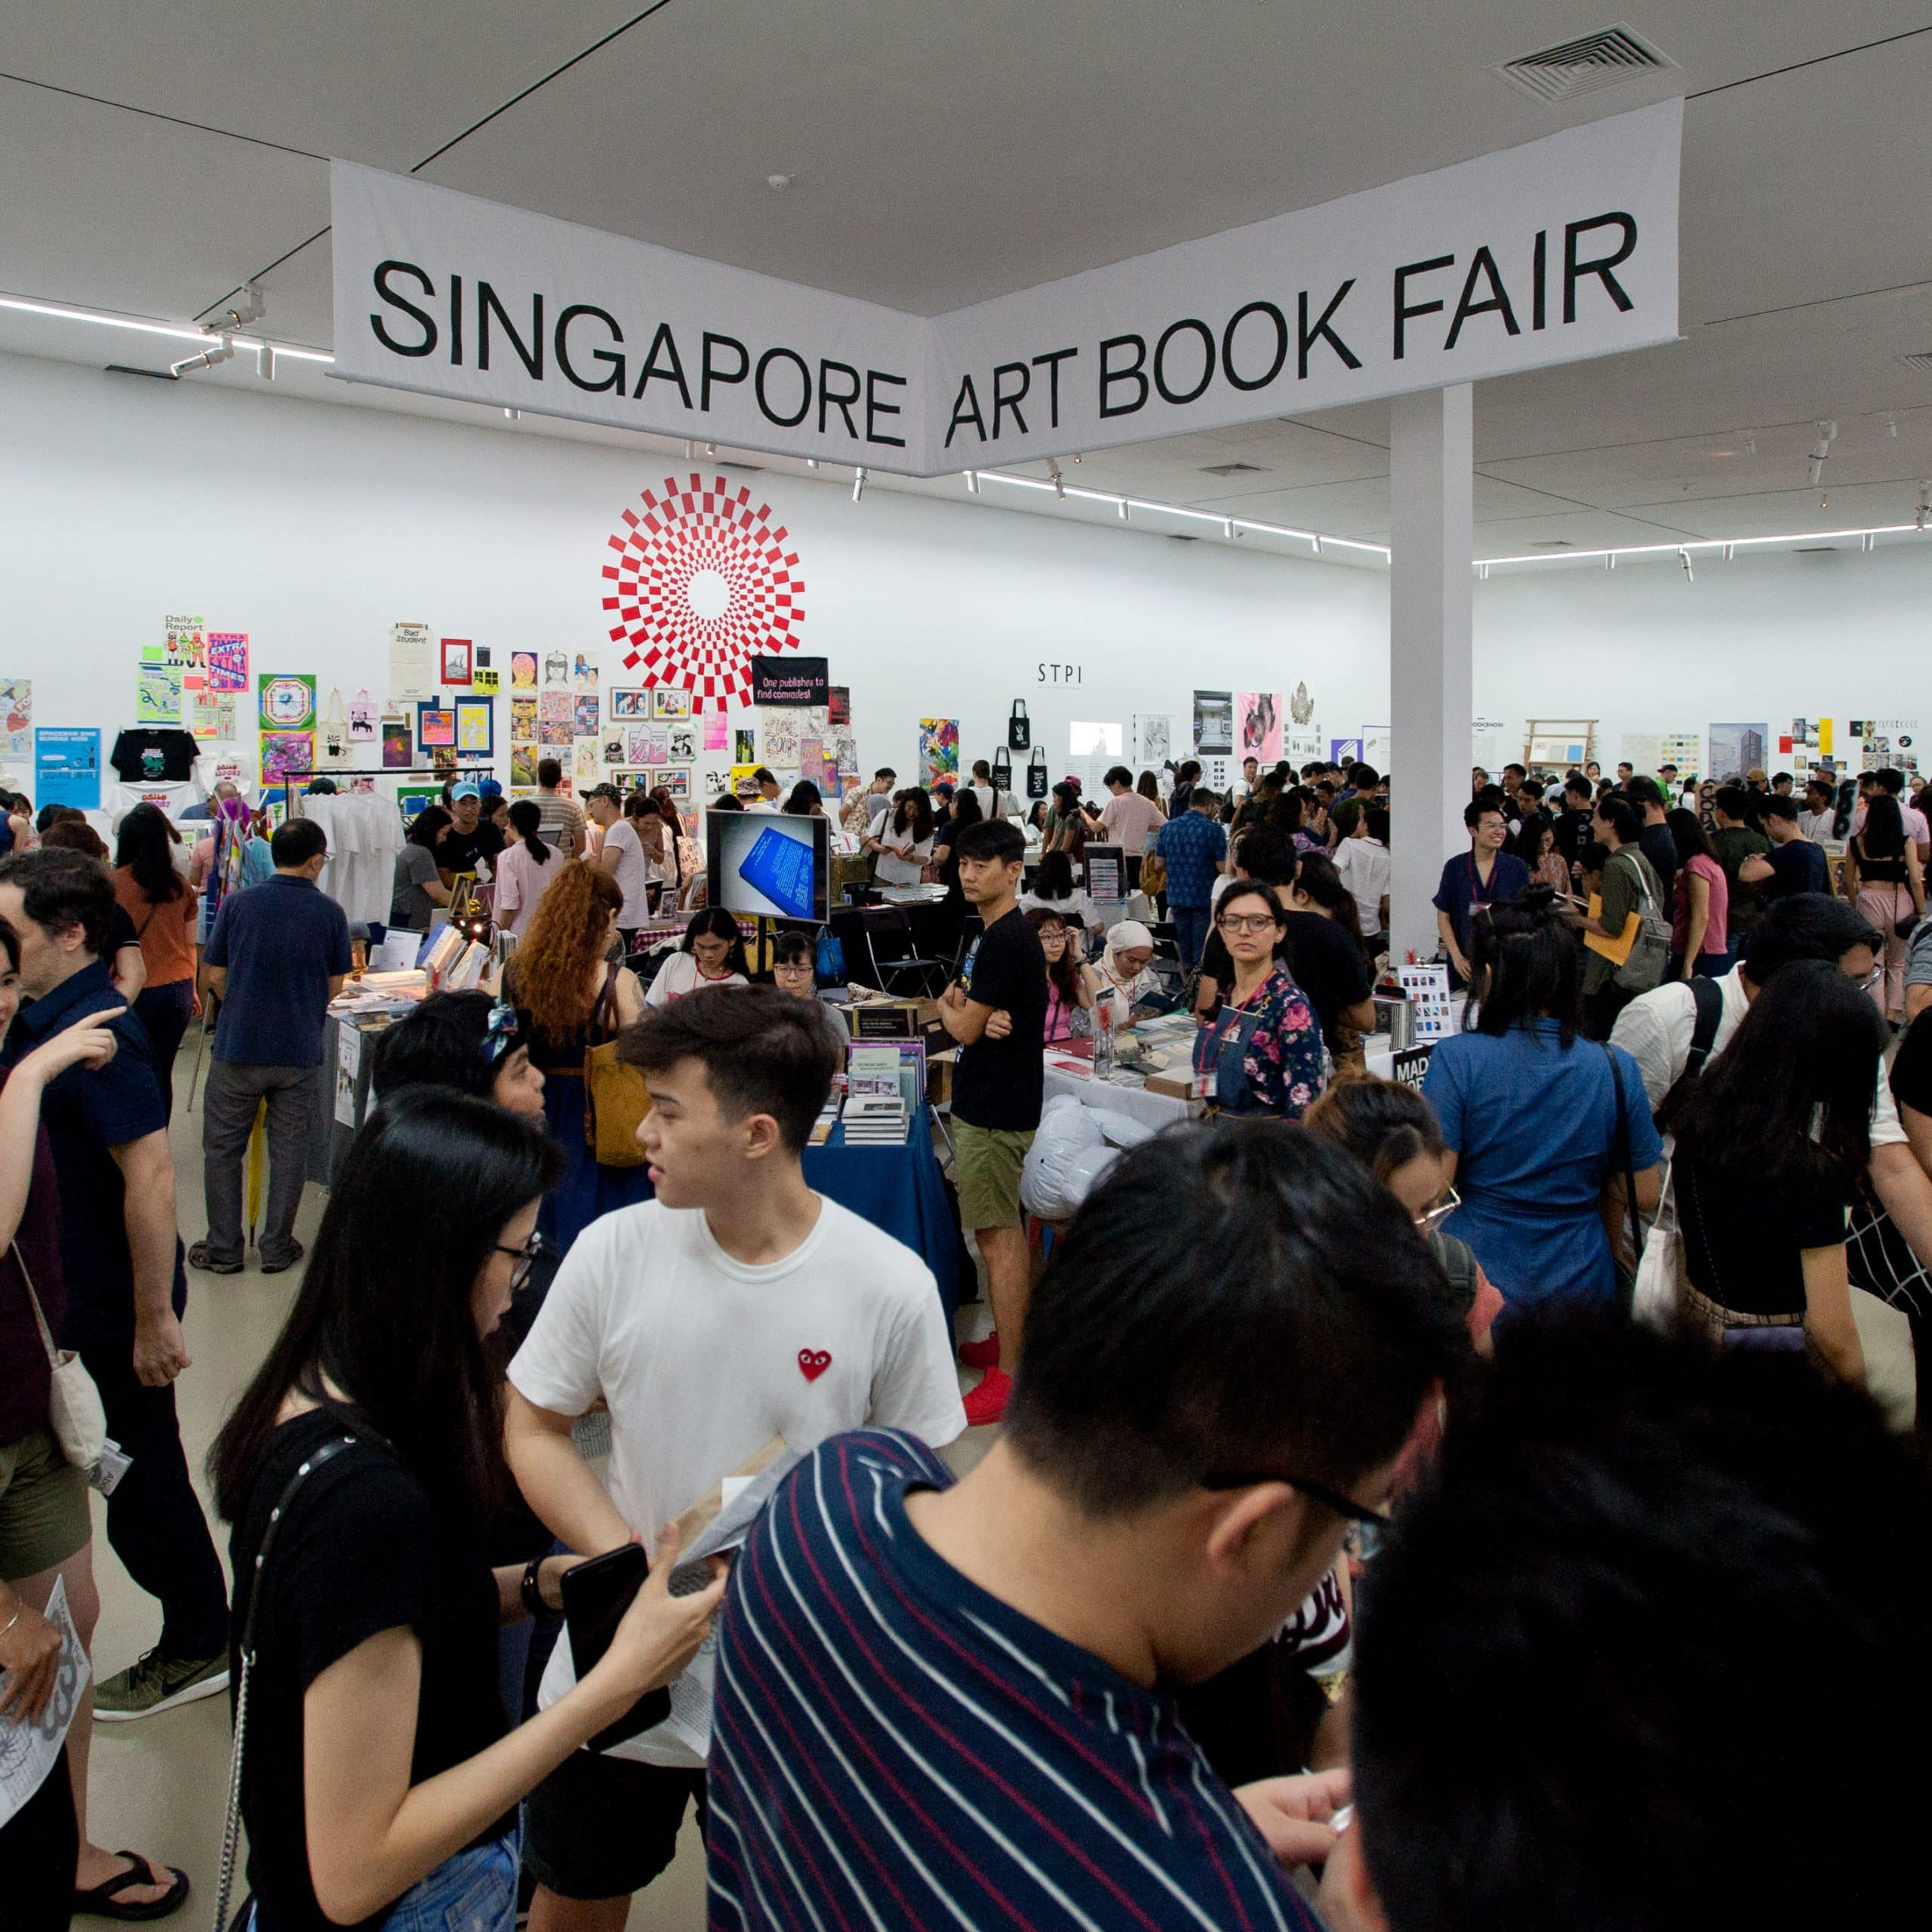 Singapore Art Book Fair 2019, IMAGE COURTESY OF Singapore Art Book Fair